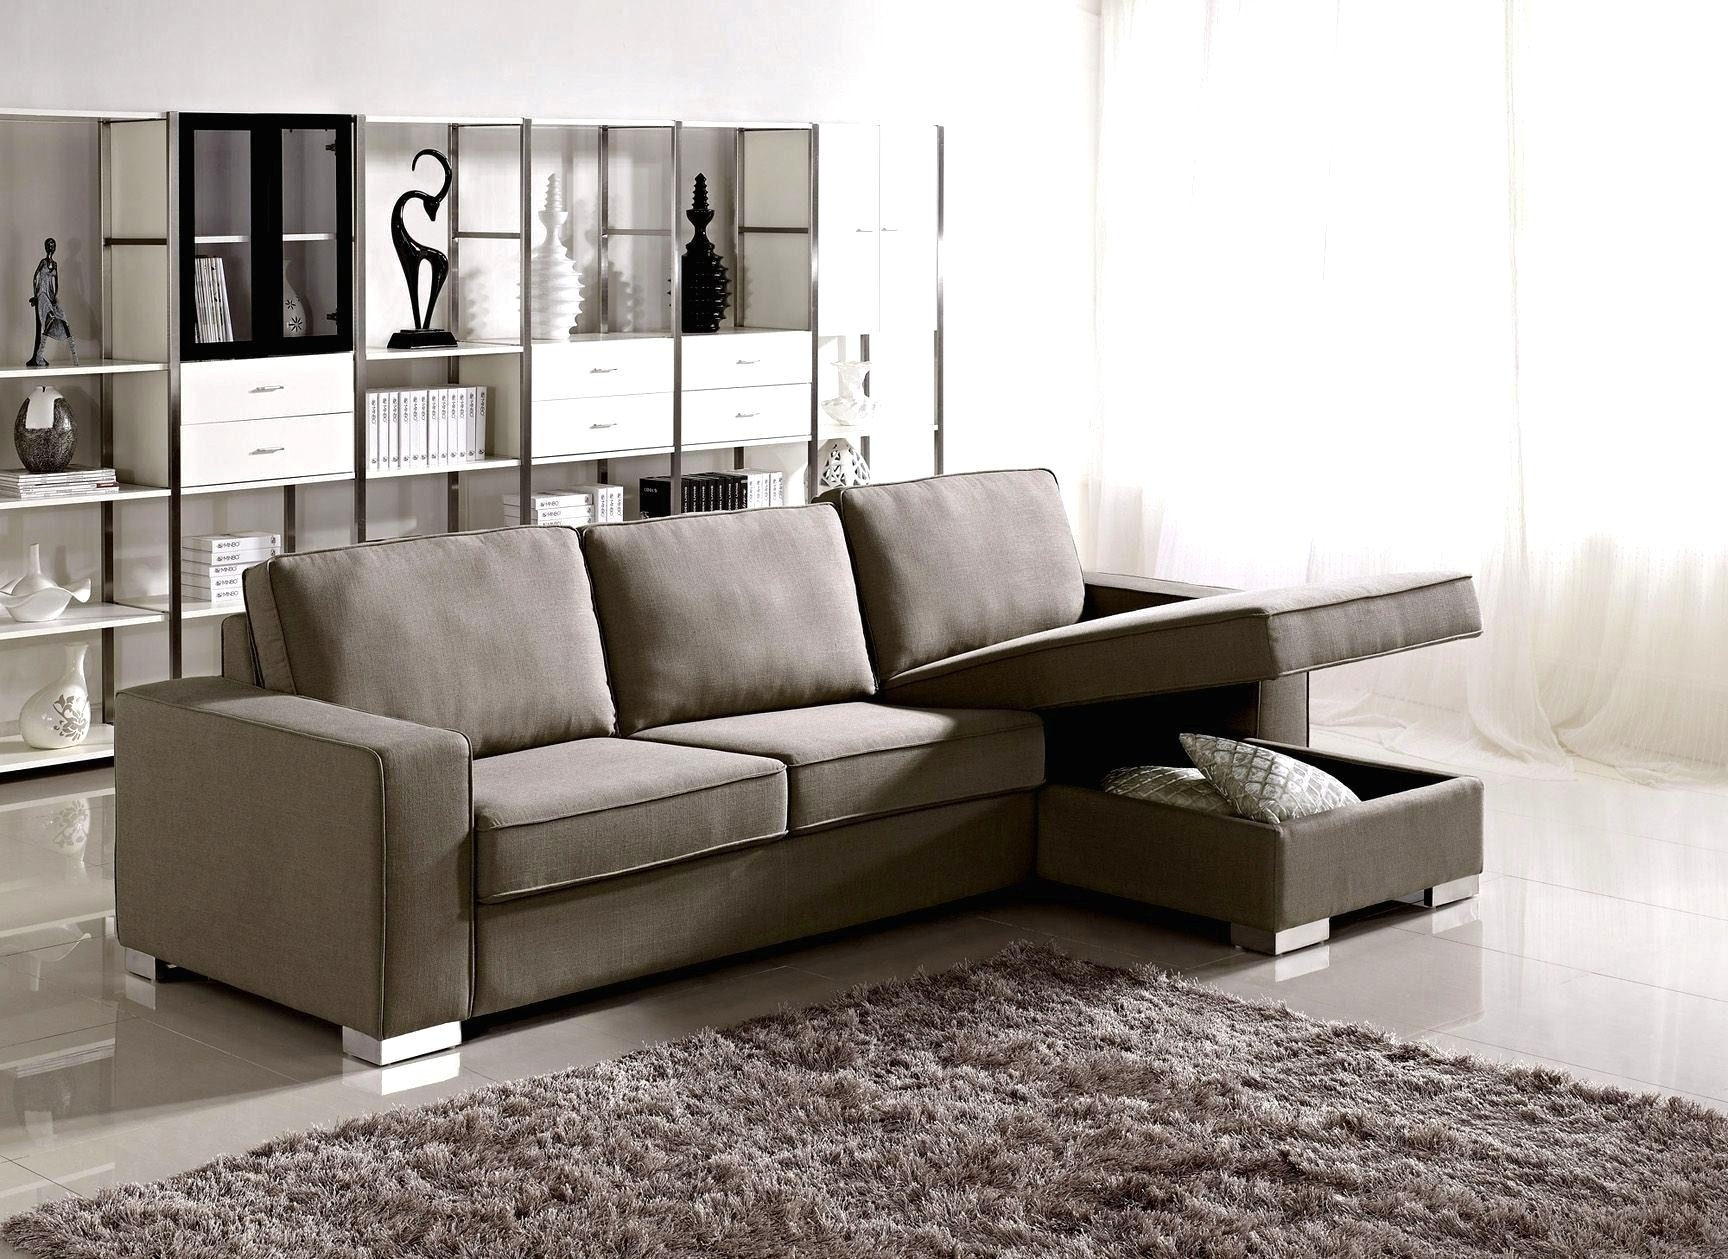 Inspirational Sectional Sofa San Antonio – Buildsimplehome Throughout Sectional Sofas In San Antonio (View 6 of 10)